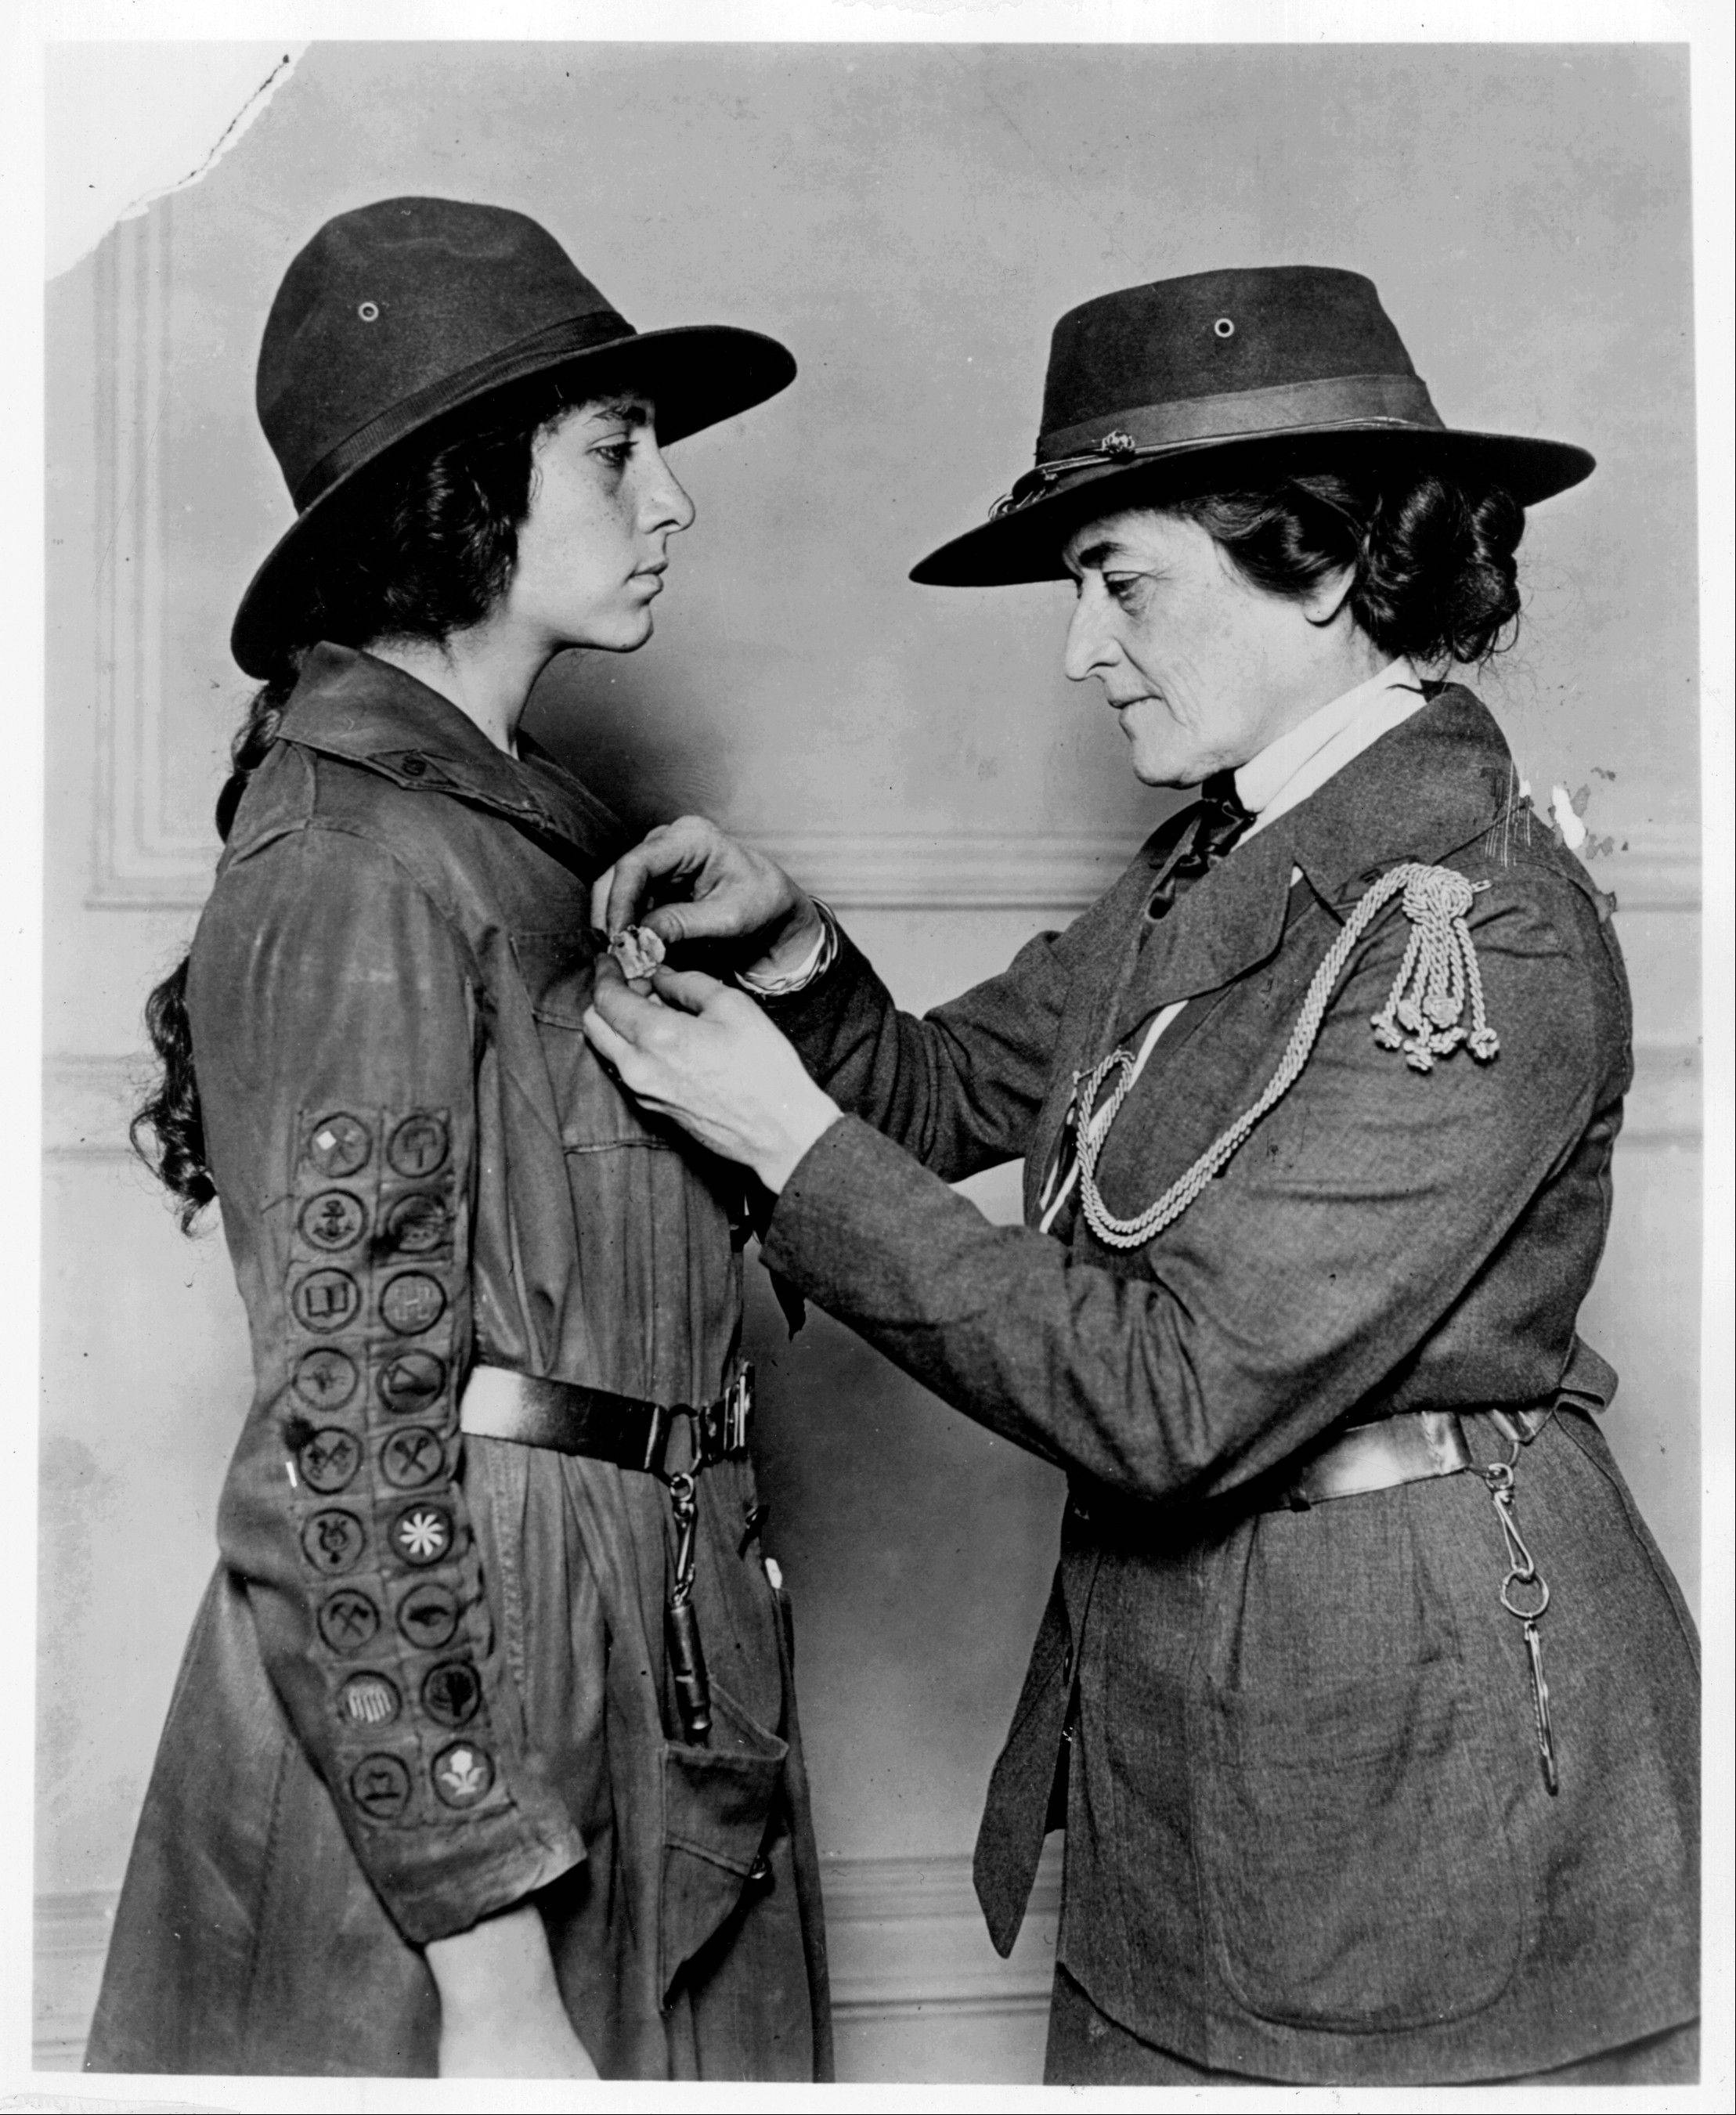 Girl Scouts founder Juliette Gordon Low awards the Golden Eaglet to a Girl Scout in 1919. Low began the organization in March 1912 to encourage girls to explore their world.